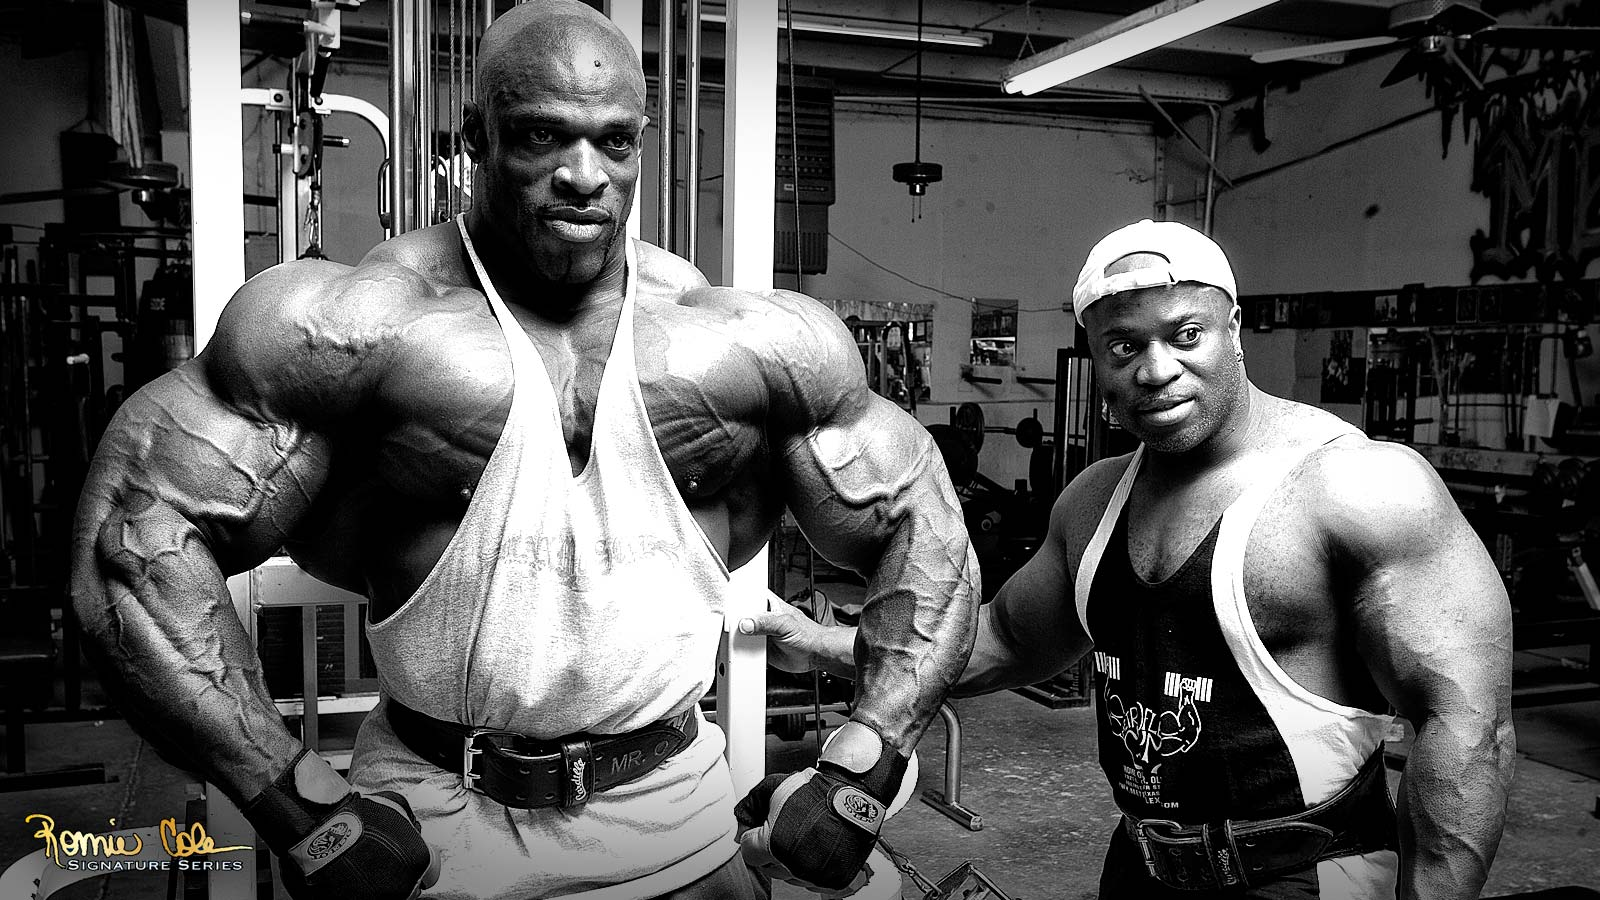 ronnie_coleman_by_exploiter69-d67nl5a